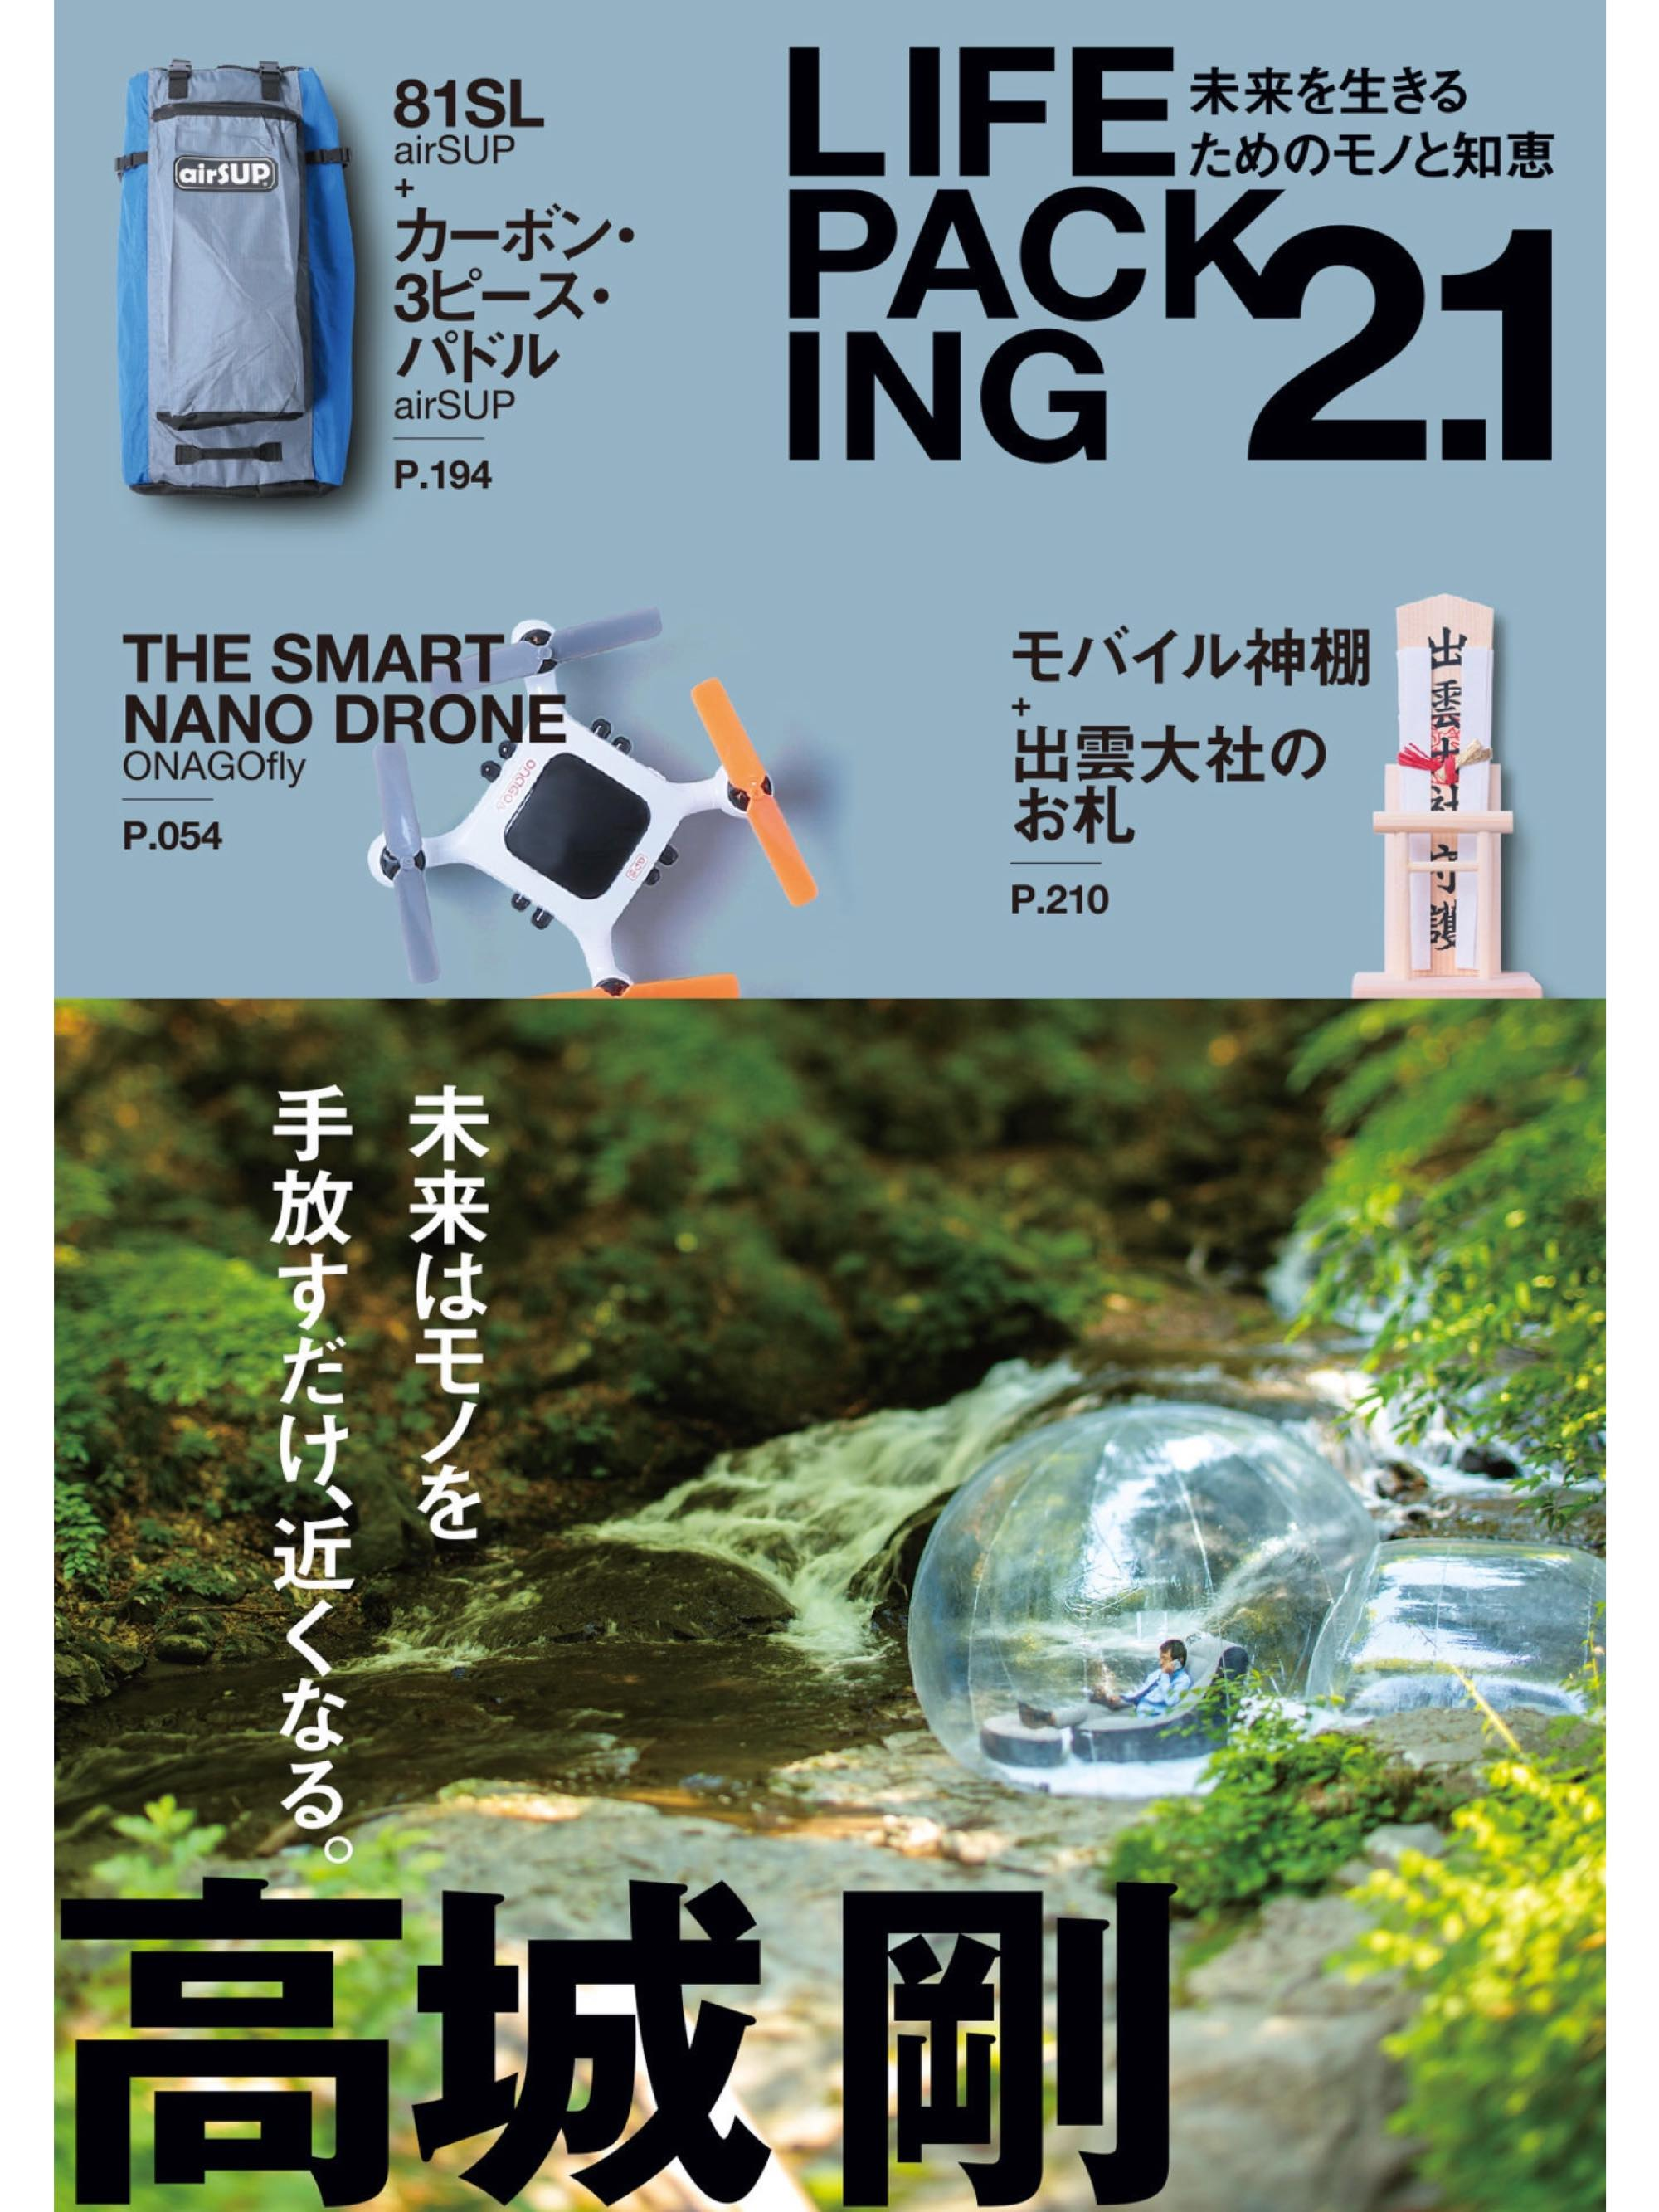 life-packing-2.11